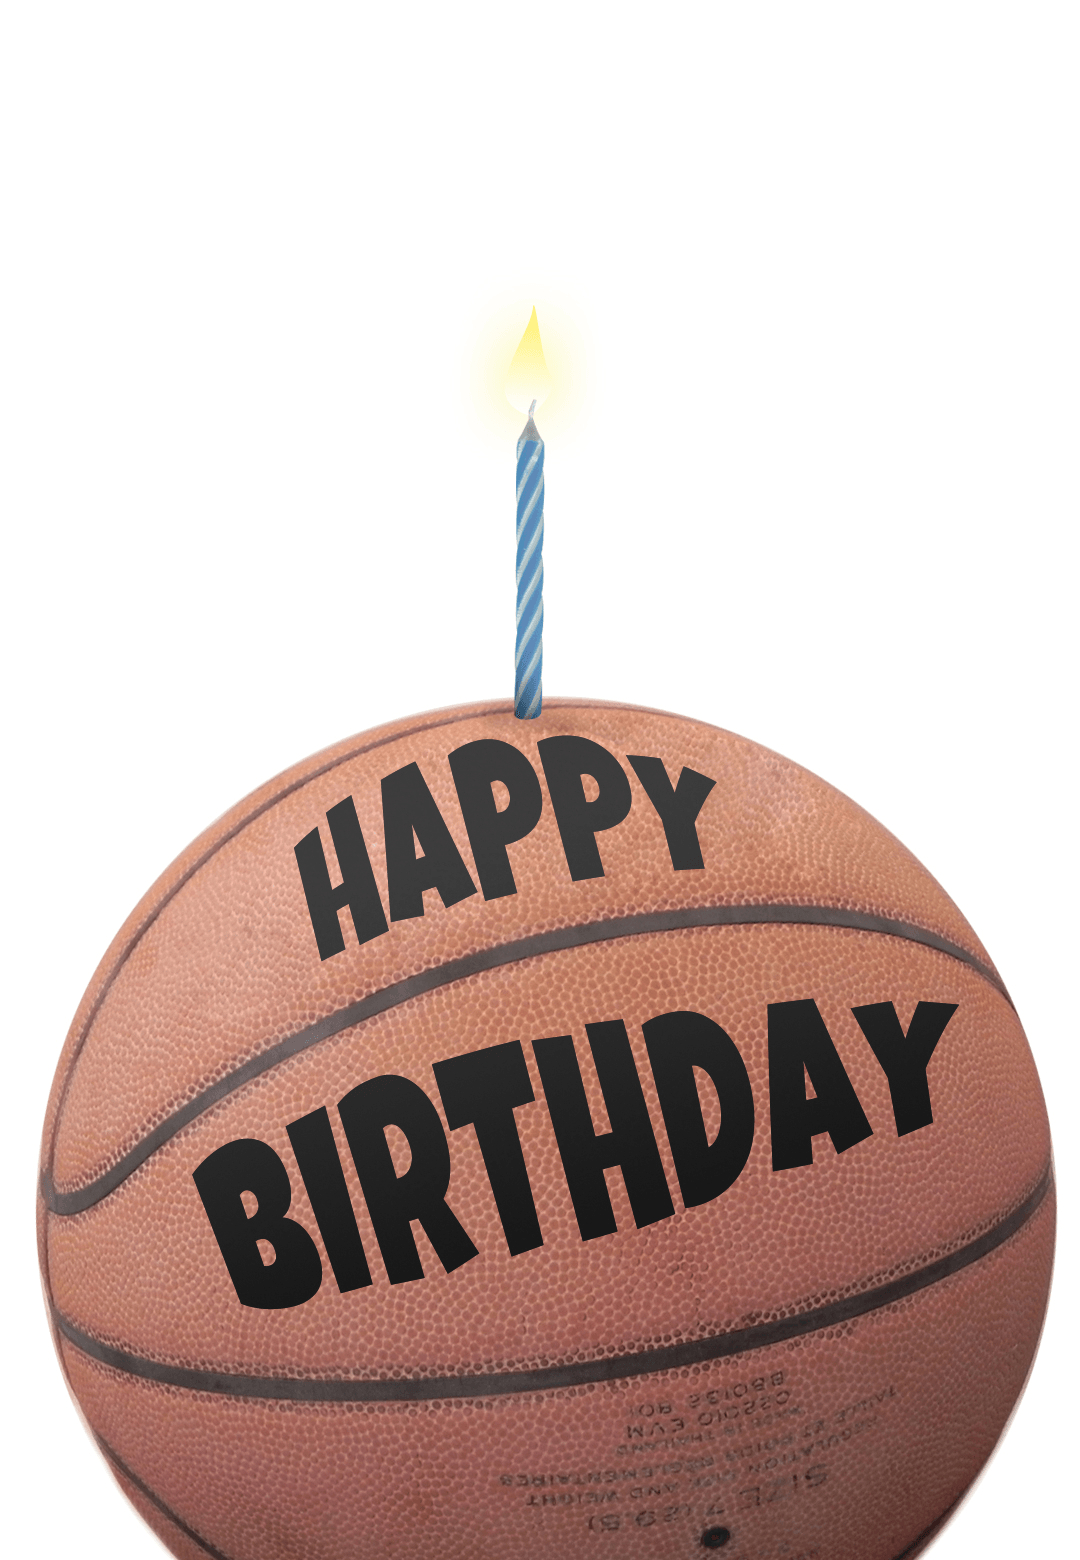 Free Printable Birthday Card - Basketball | Greetings Island - Free Printable Basketball Cards